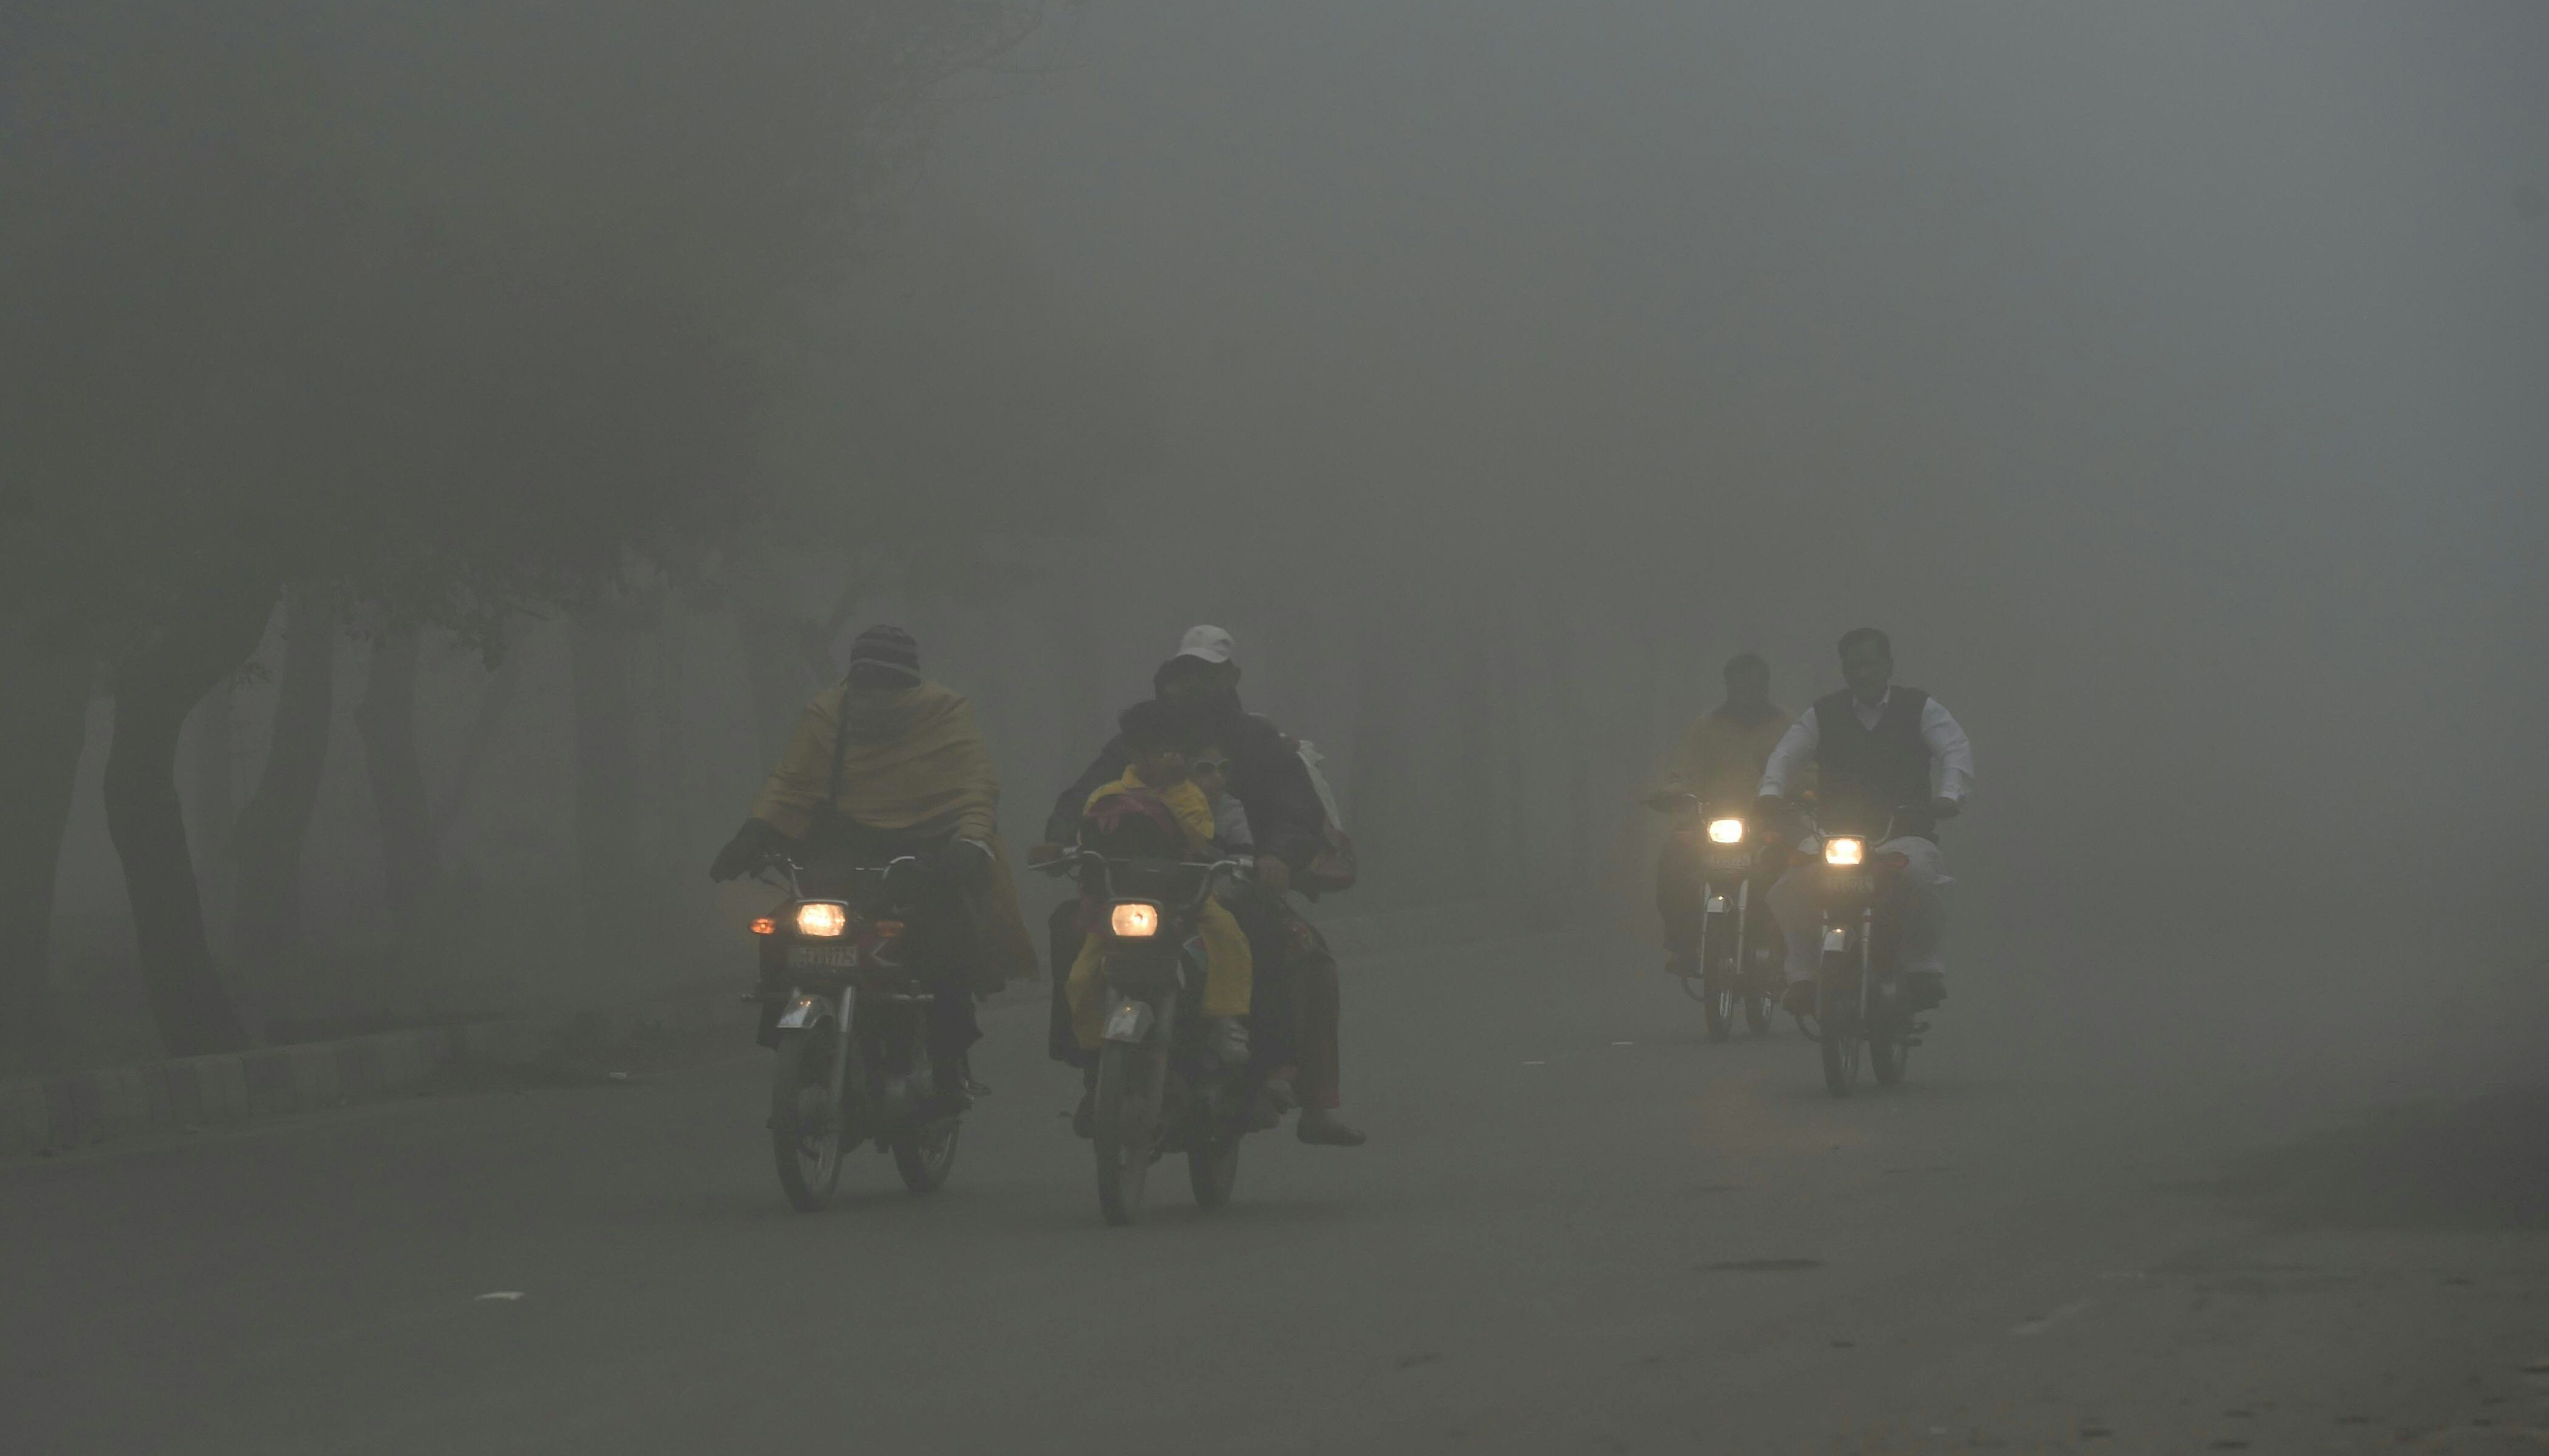 Rain expected in Punjab, KP, likely to clear smog